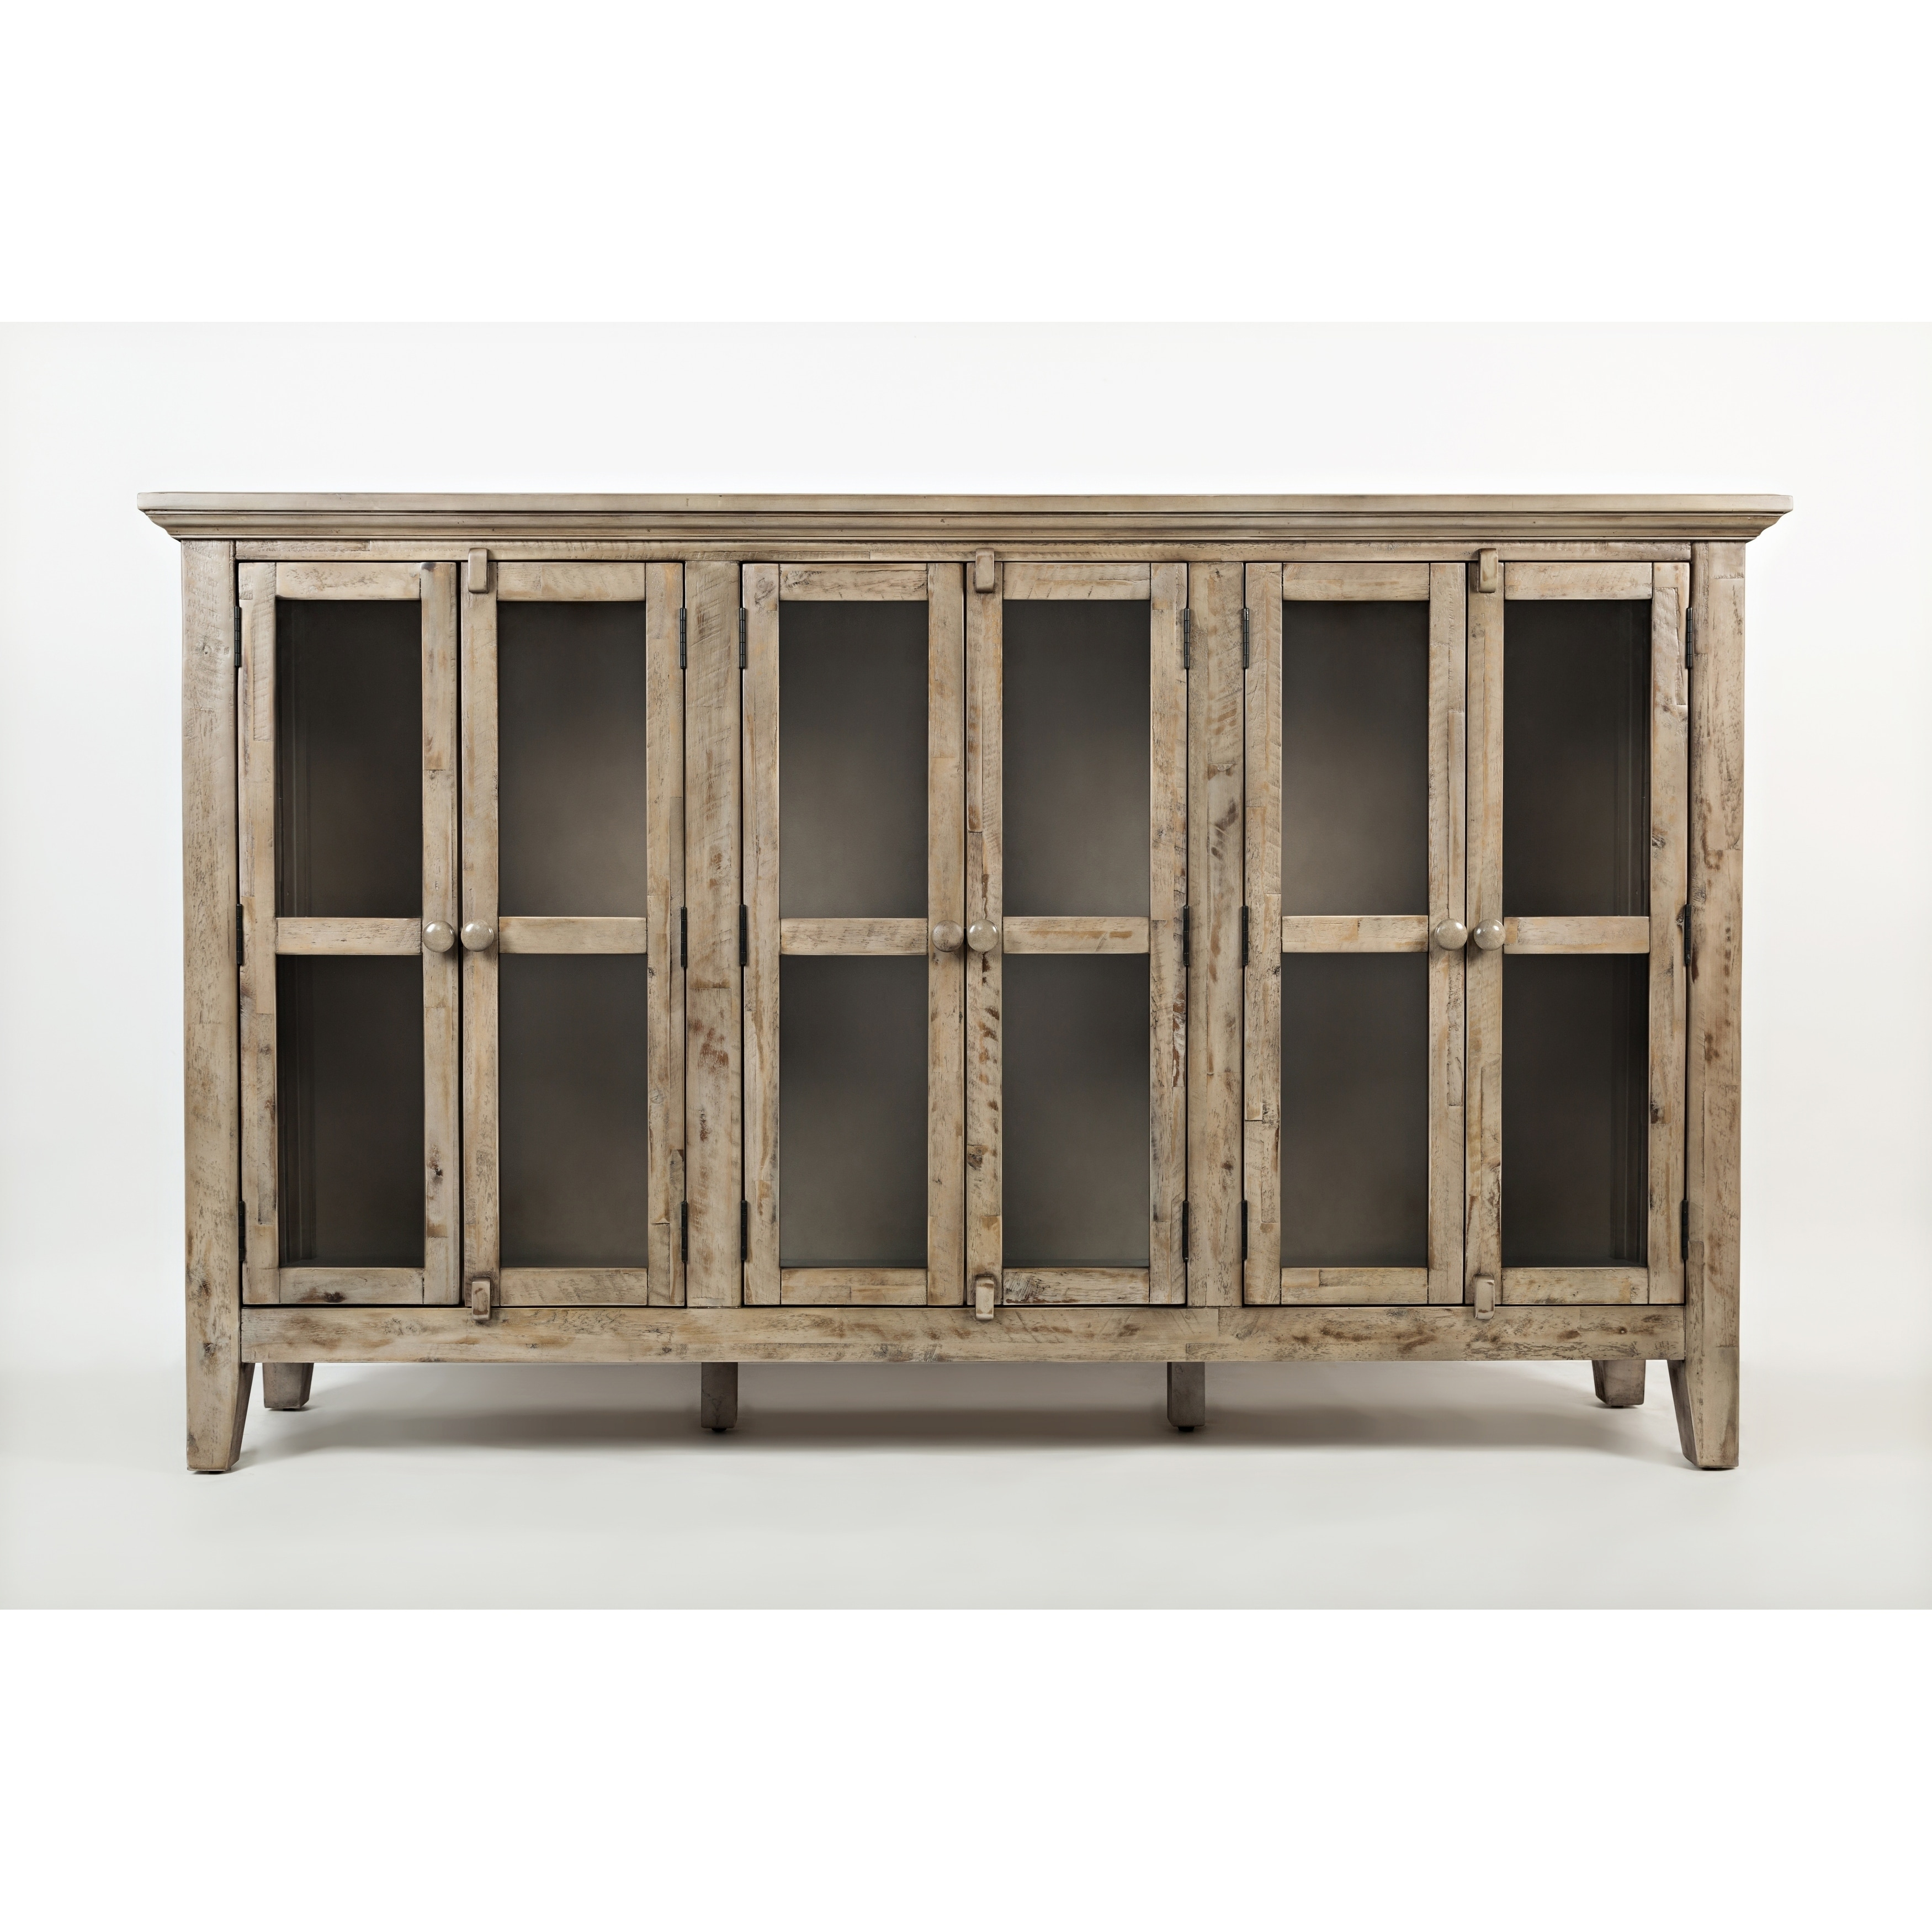 Wooden Accent Cabinet With 6 Glass Doors, Weathered Gray For Current Eau Claire 6 Door Accent Cabinets (#20 of 20)